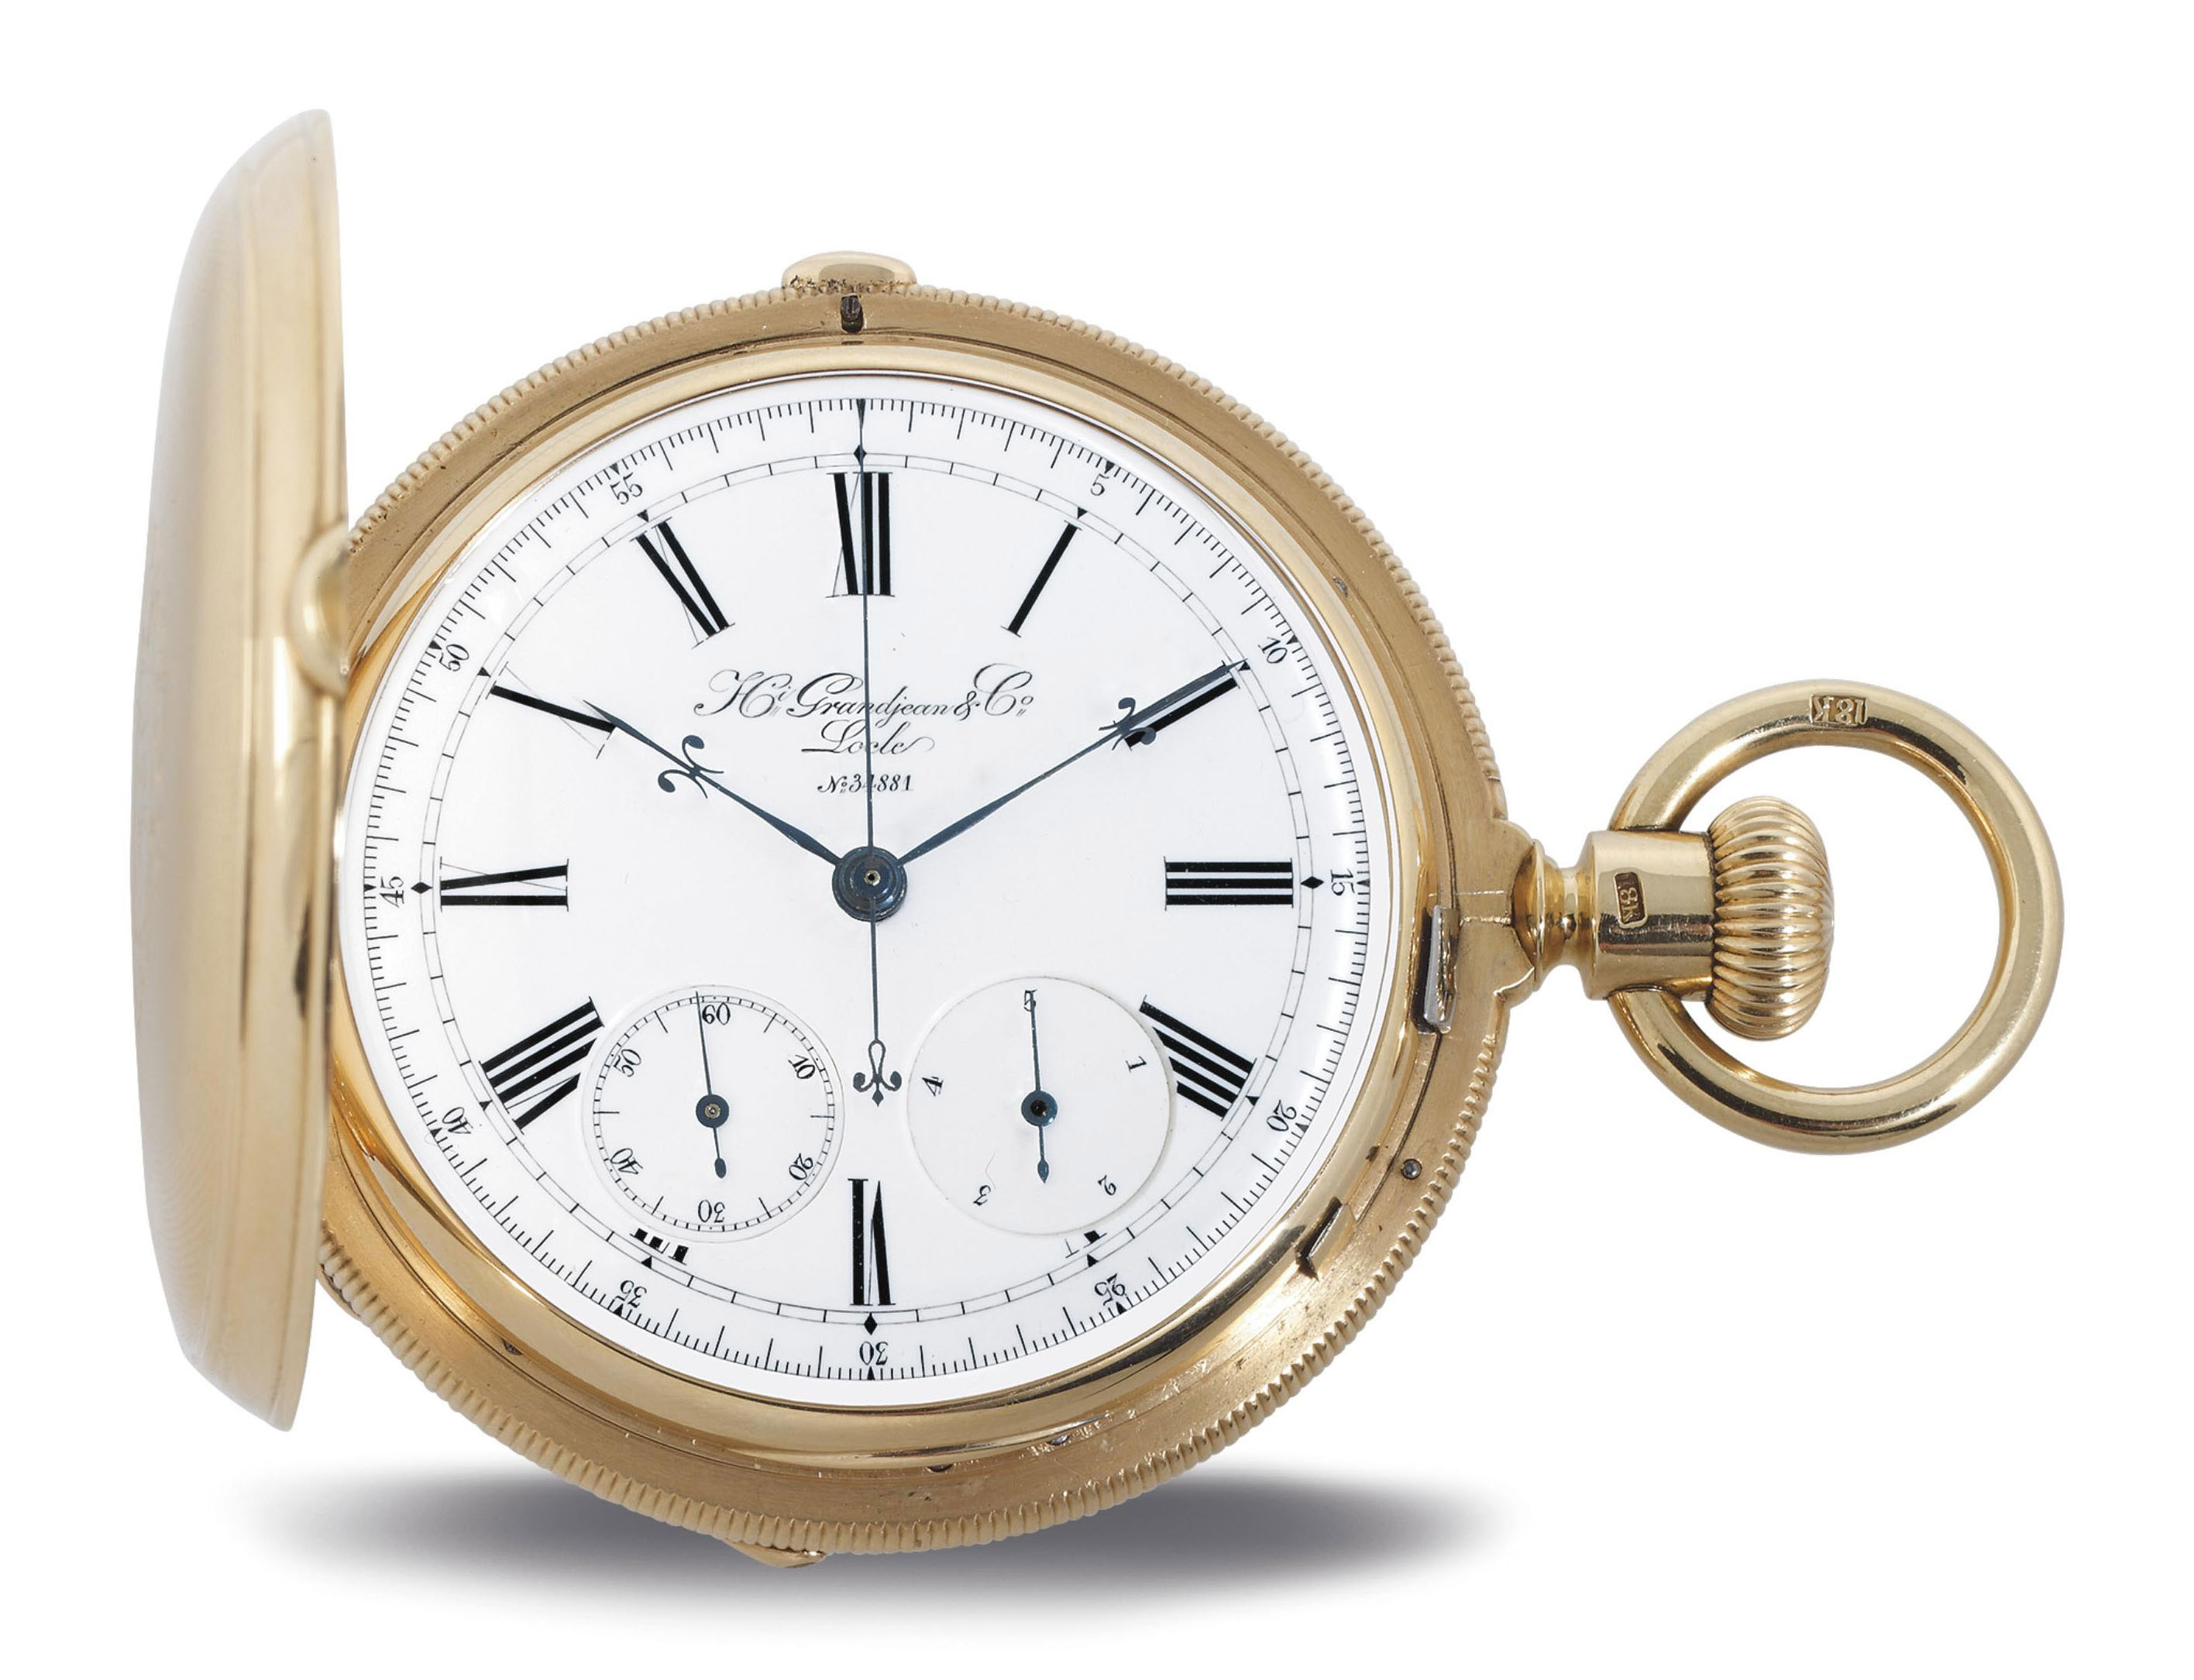 GRANDJEAN.  A FINE HEAVY 18K GOLD TWO-TRAIN HUNTER CASE KEYLESS LEVER WATCH WITH INDEPENDENT SECONDS AND JUMP FIFTH SECONDS